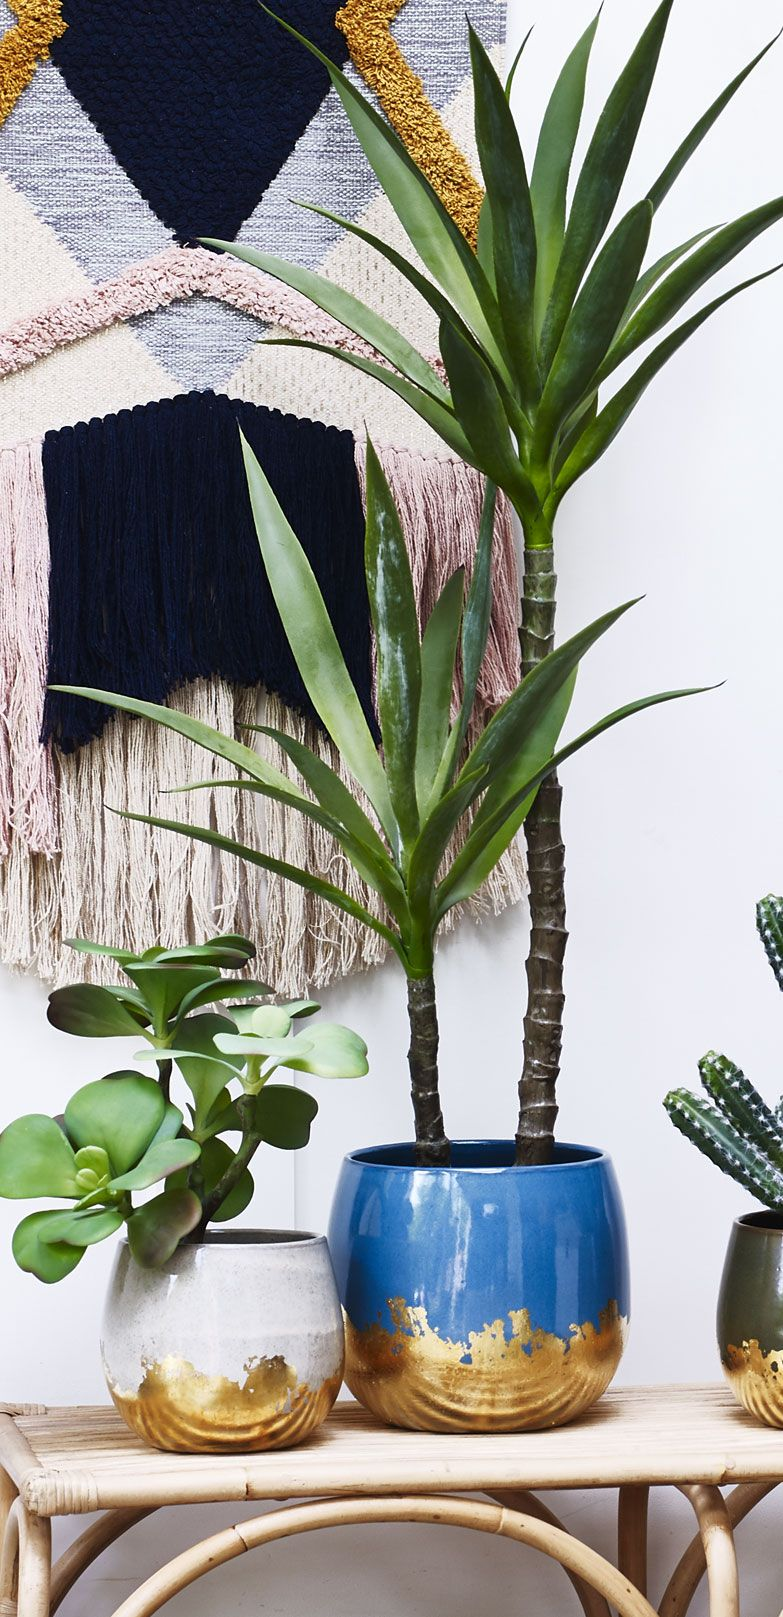 Blue Terracotta Foiled Plant Pot Extra Large Large Plant Pots Large Flower Pots Large Indoor Planters